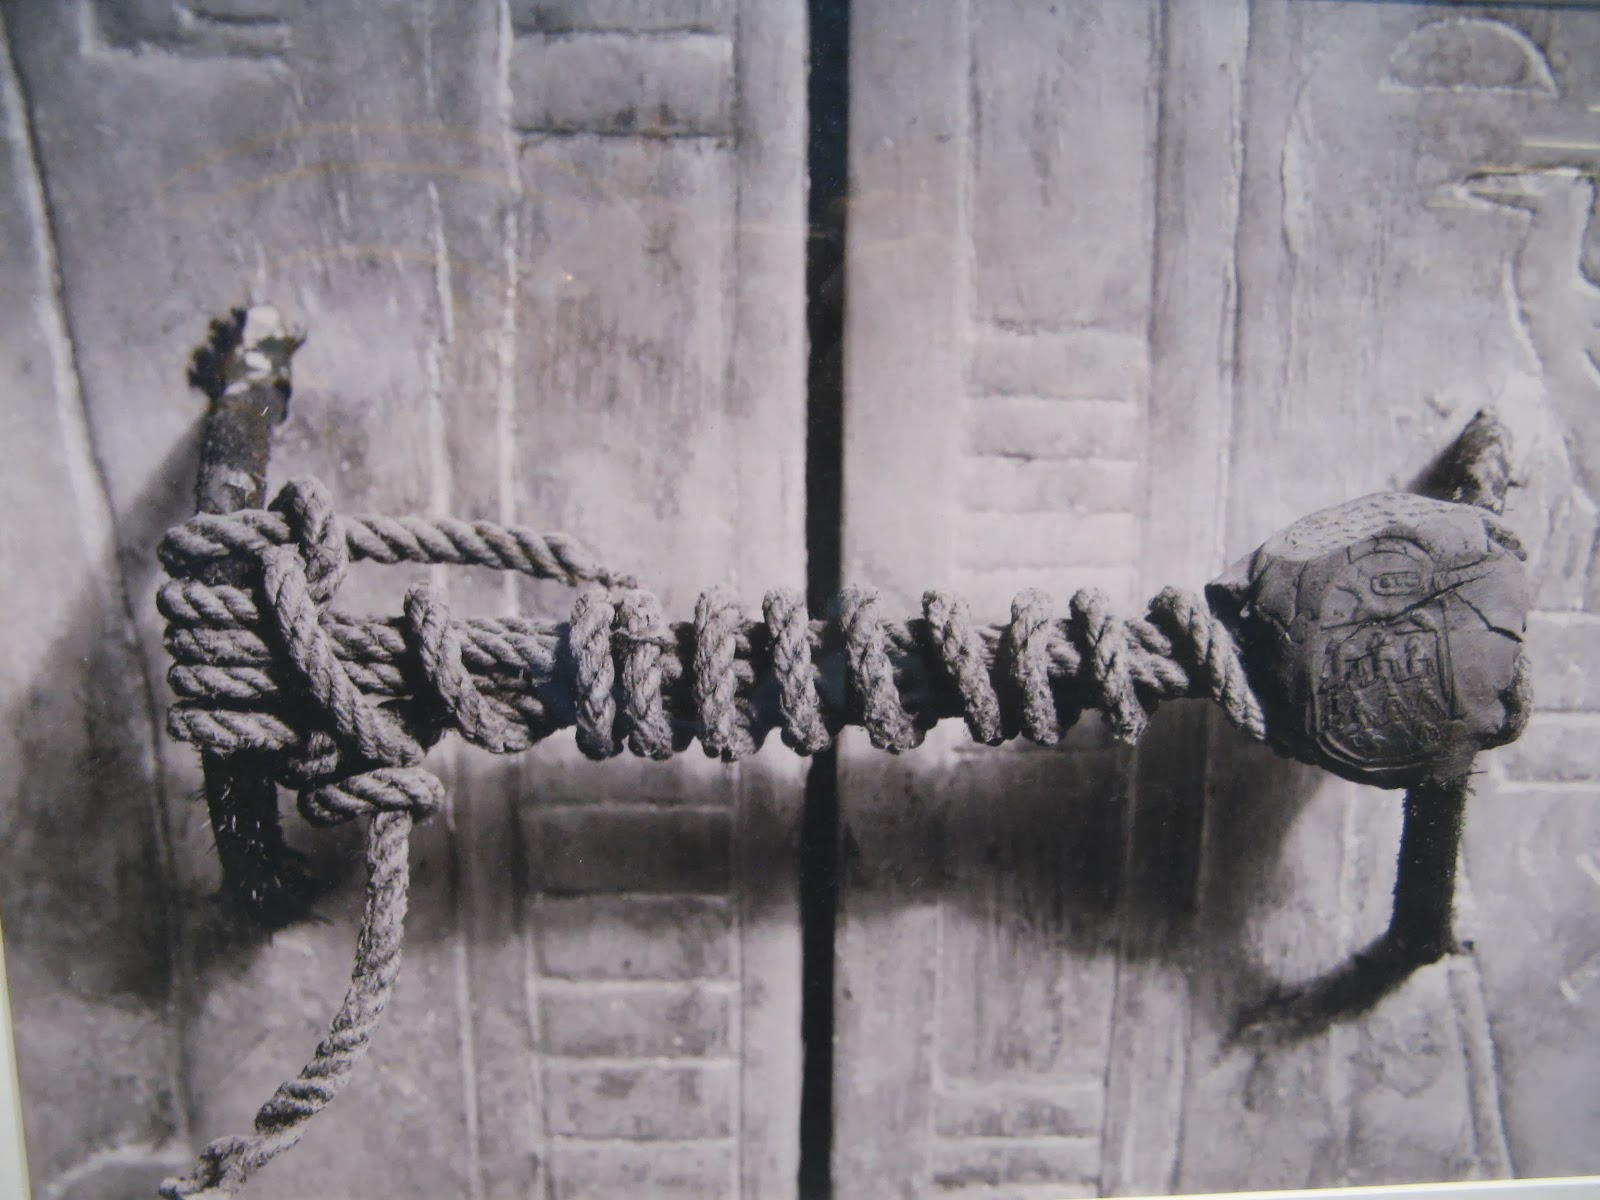 The unbroken seal on King Tutankhamun's tomb, 1922.